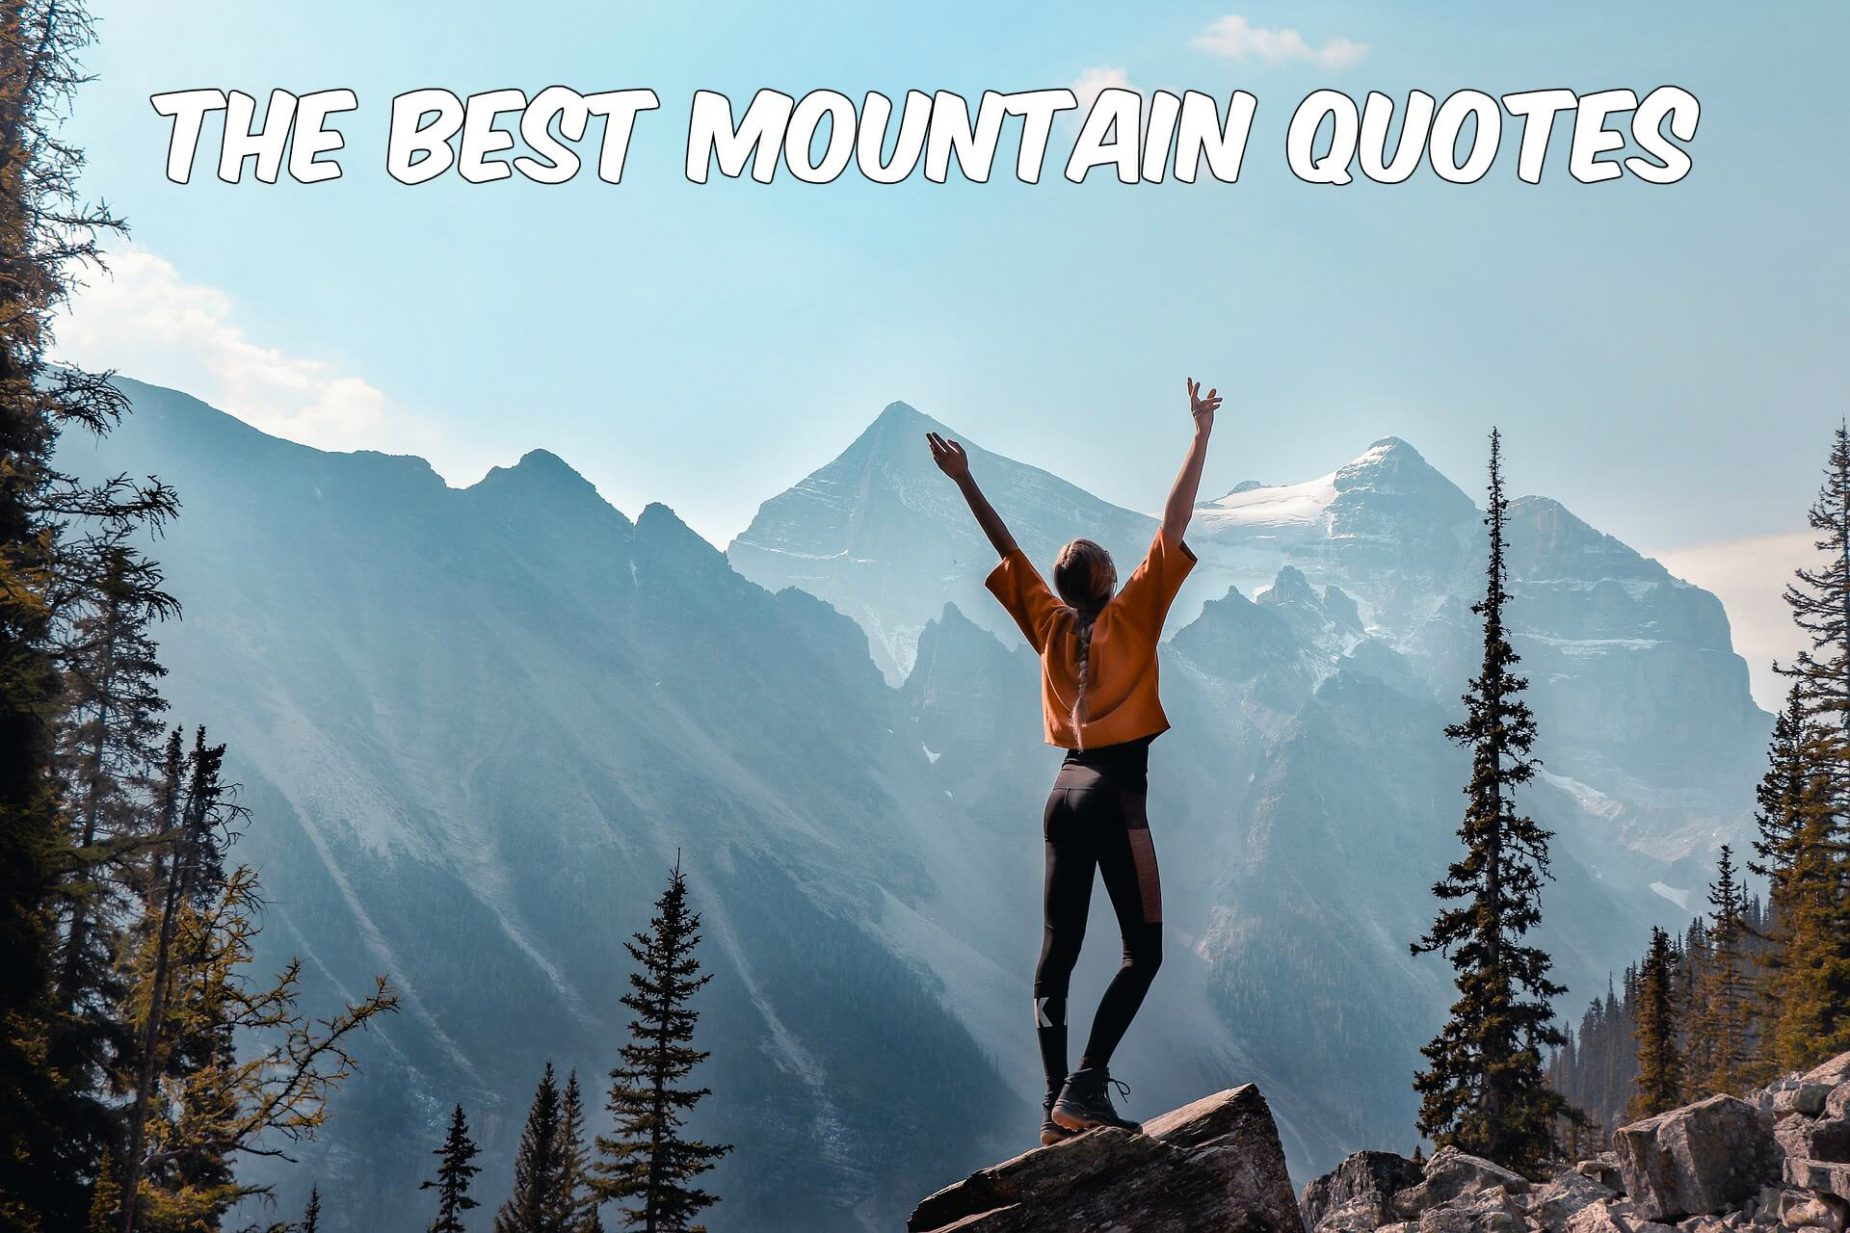 The Best Mountain Quotes